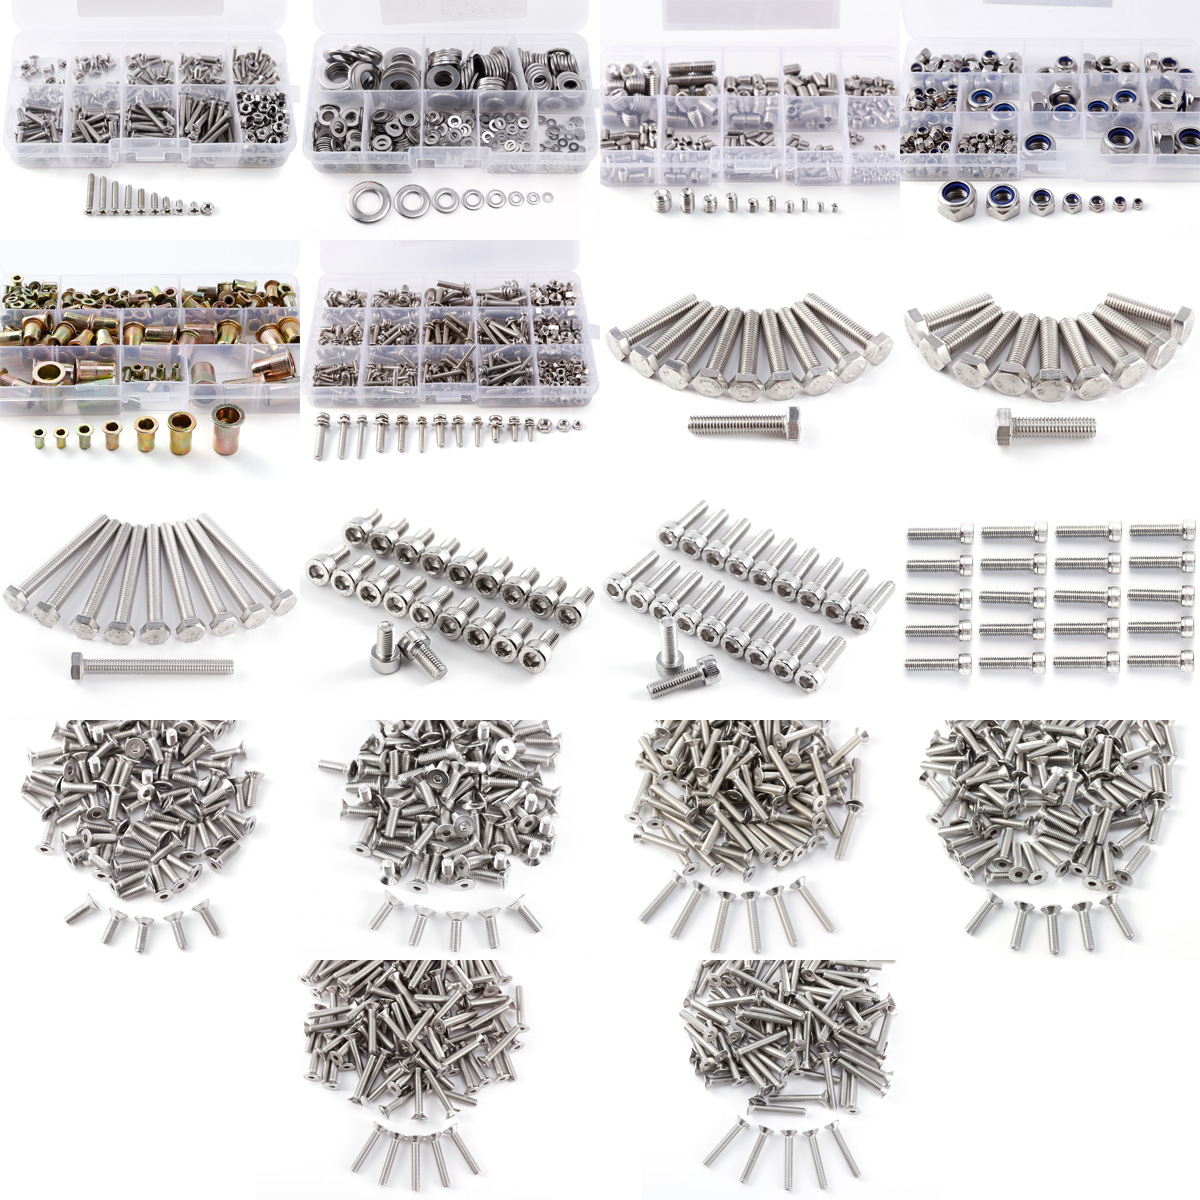 Stainless Steel Hex Socket Head Cap Bolts Screws Nuts And